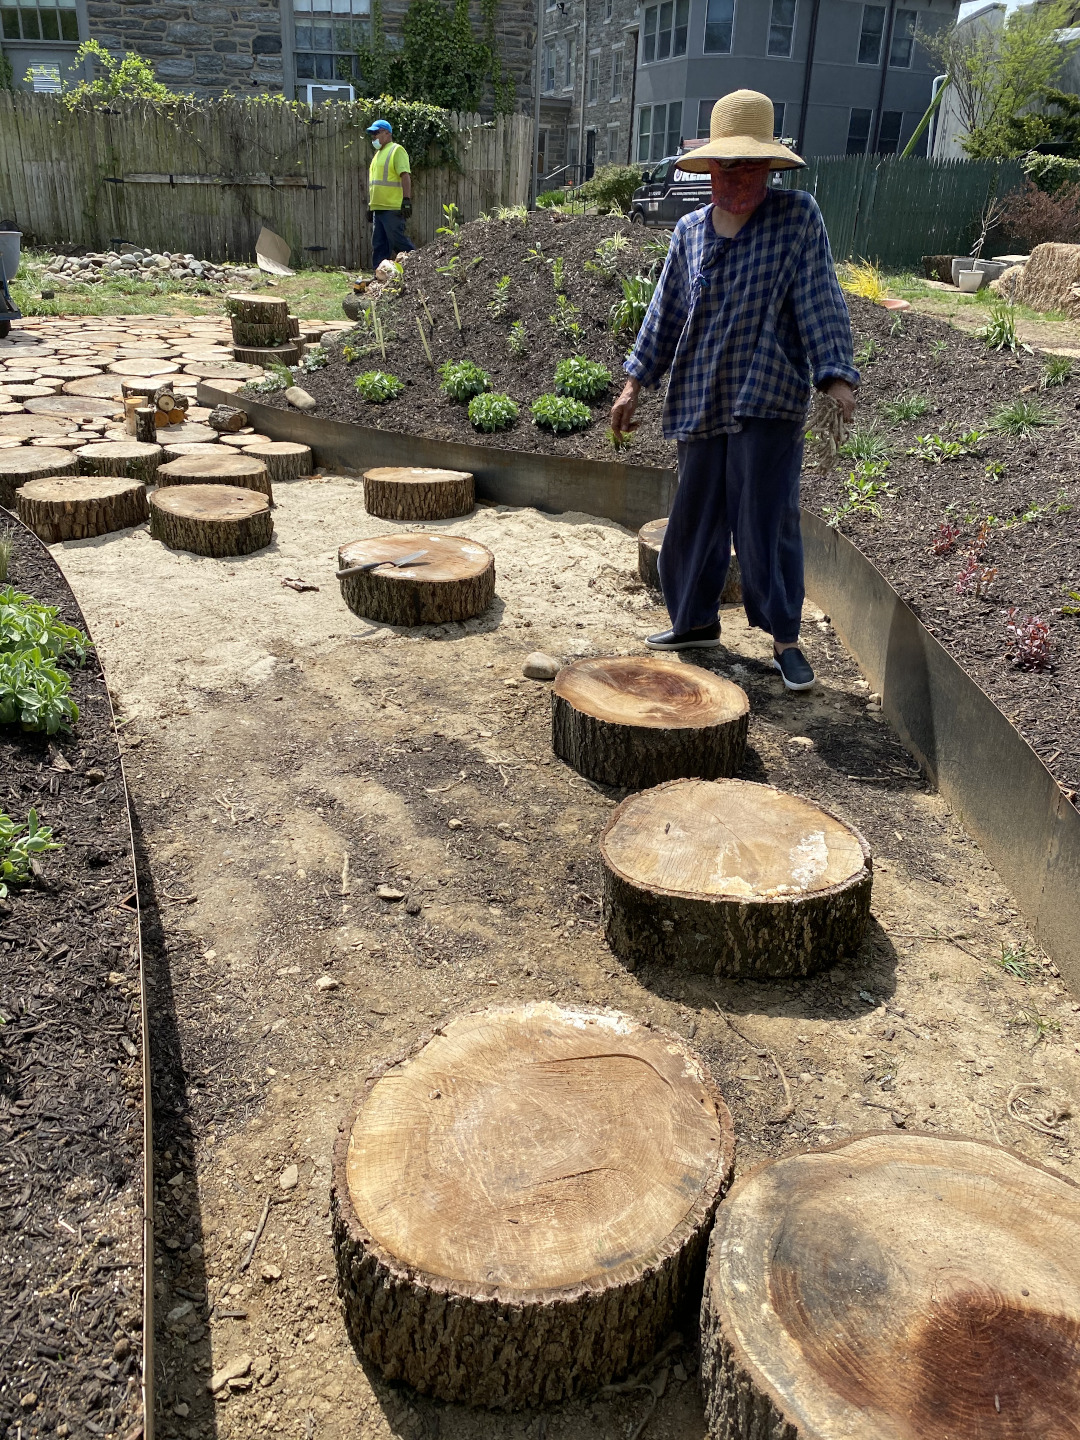 Sliced sections of logs being placed to form a path